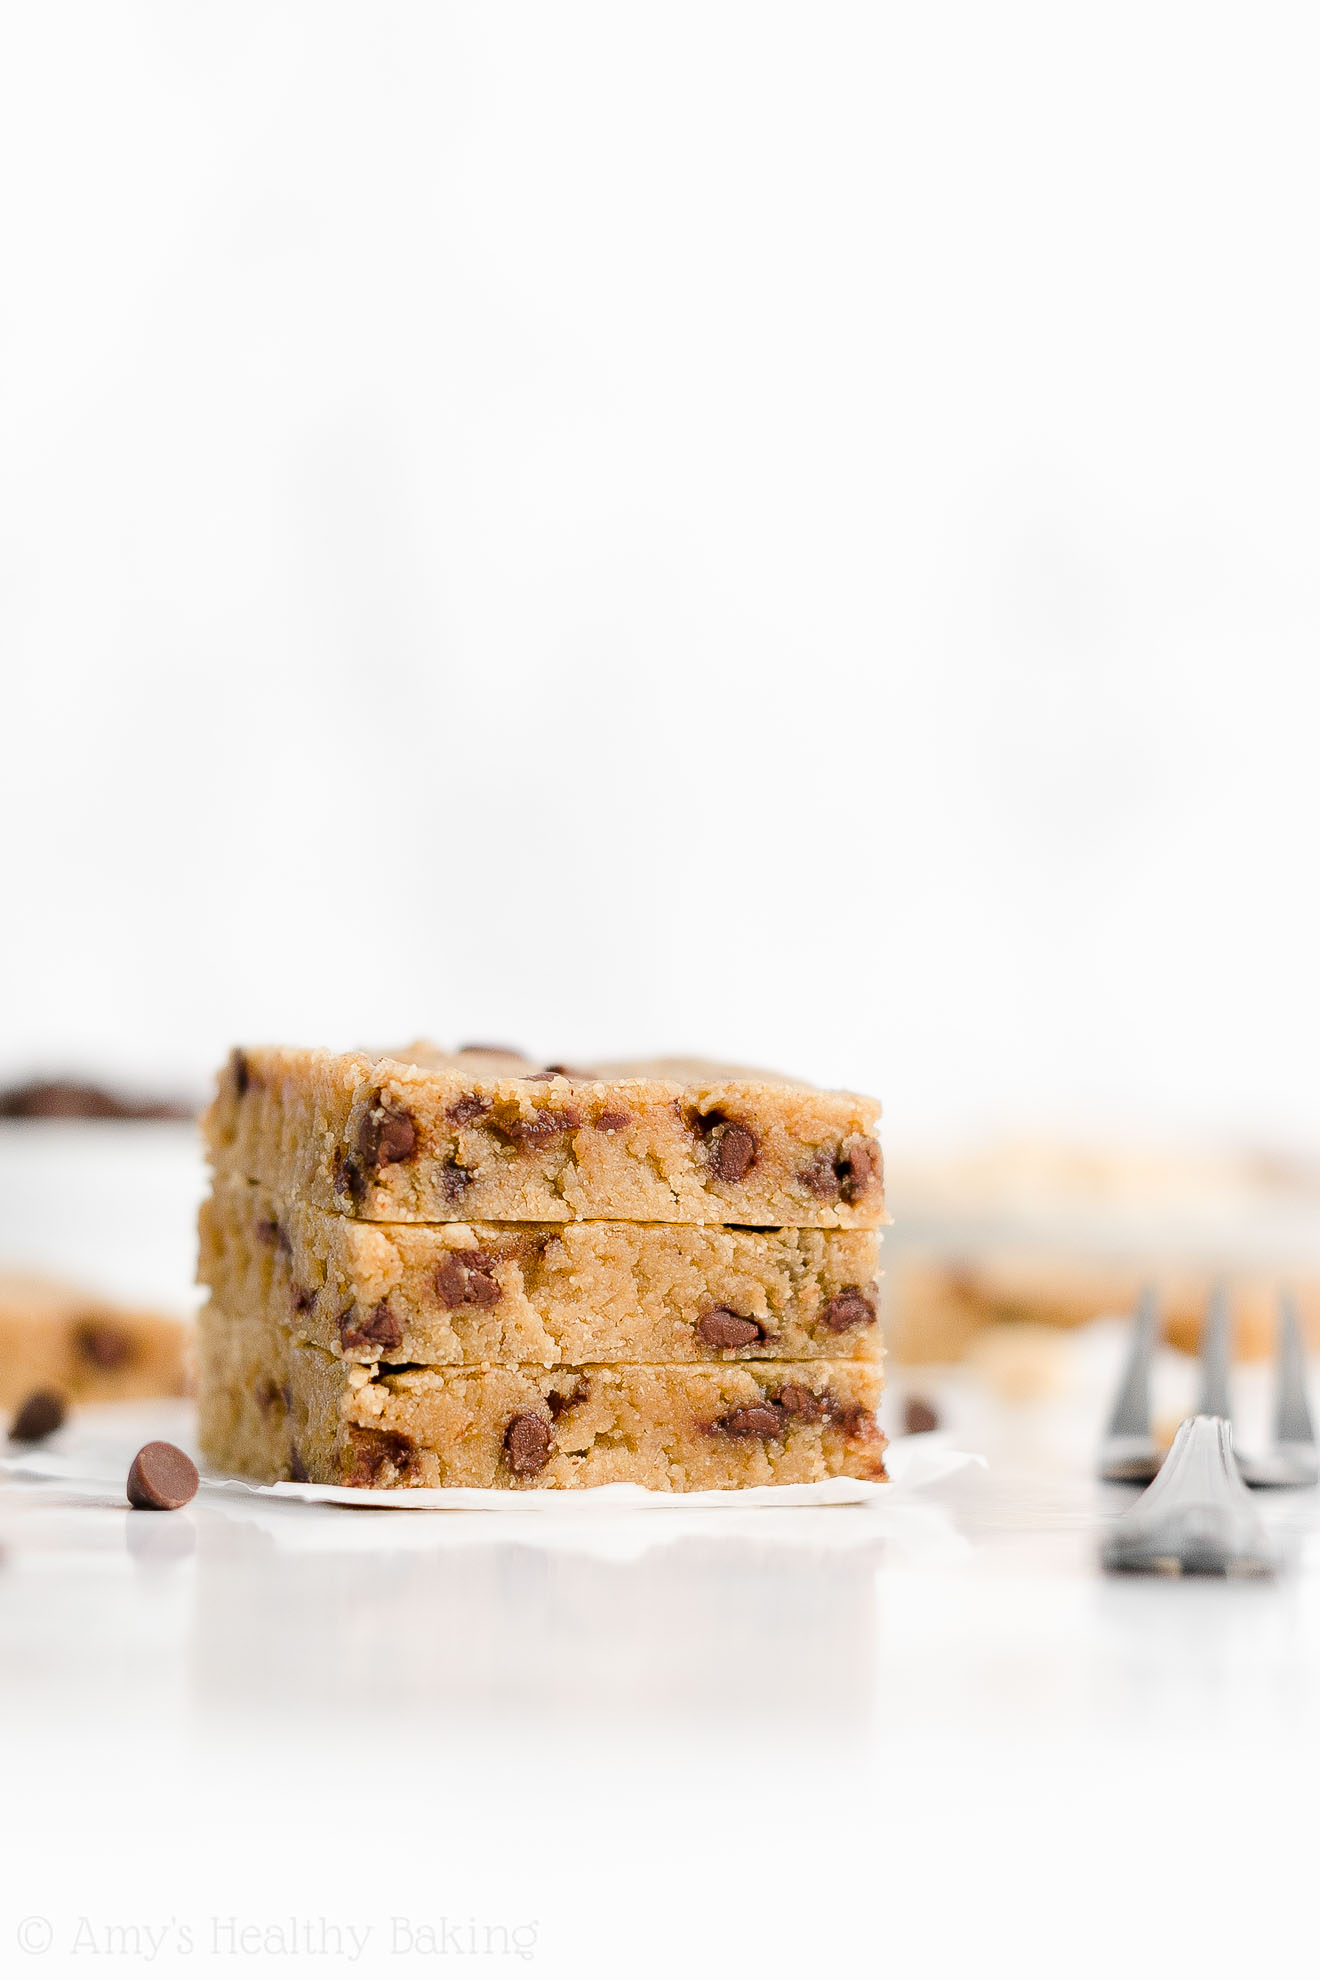 Healthy One-Bowl Chewy Flourless Chocolate Chip Peanut Butter Cookie Bars